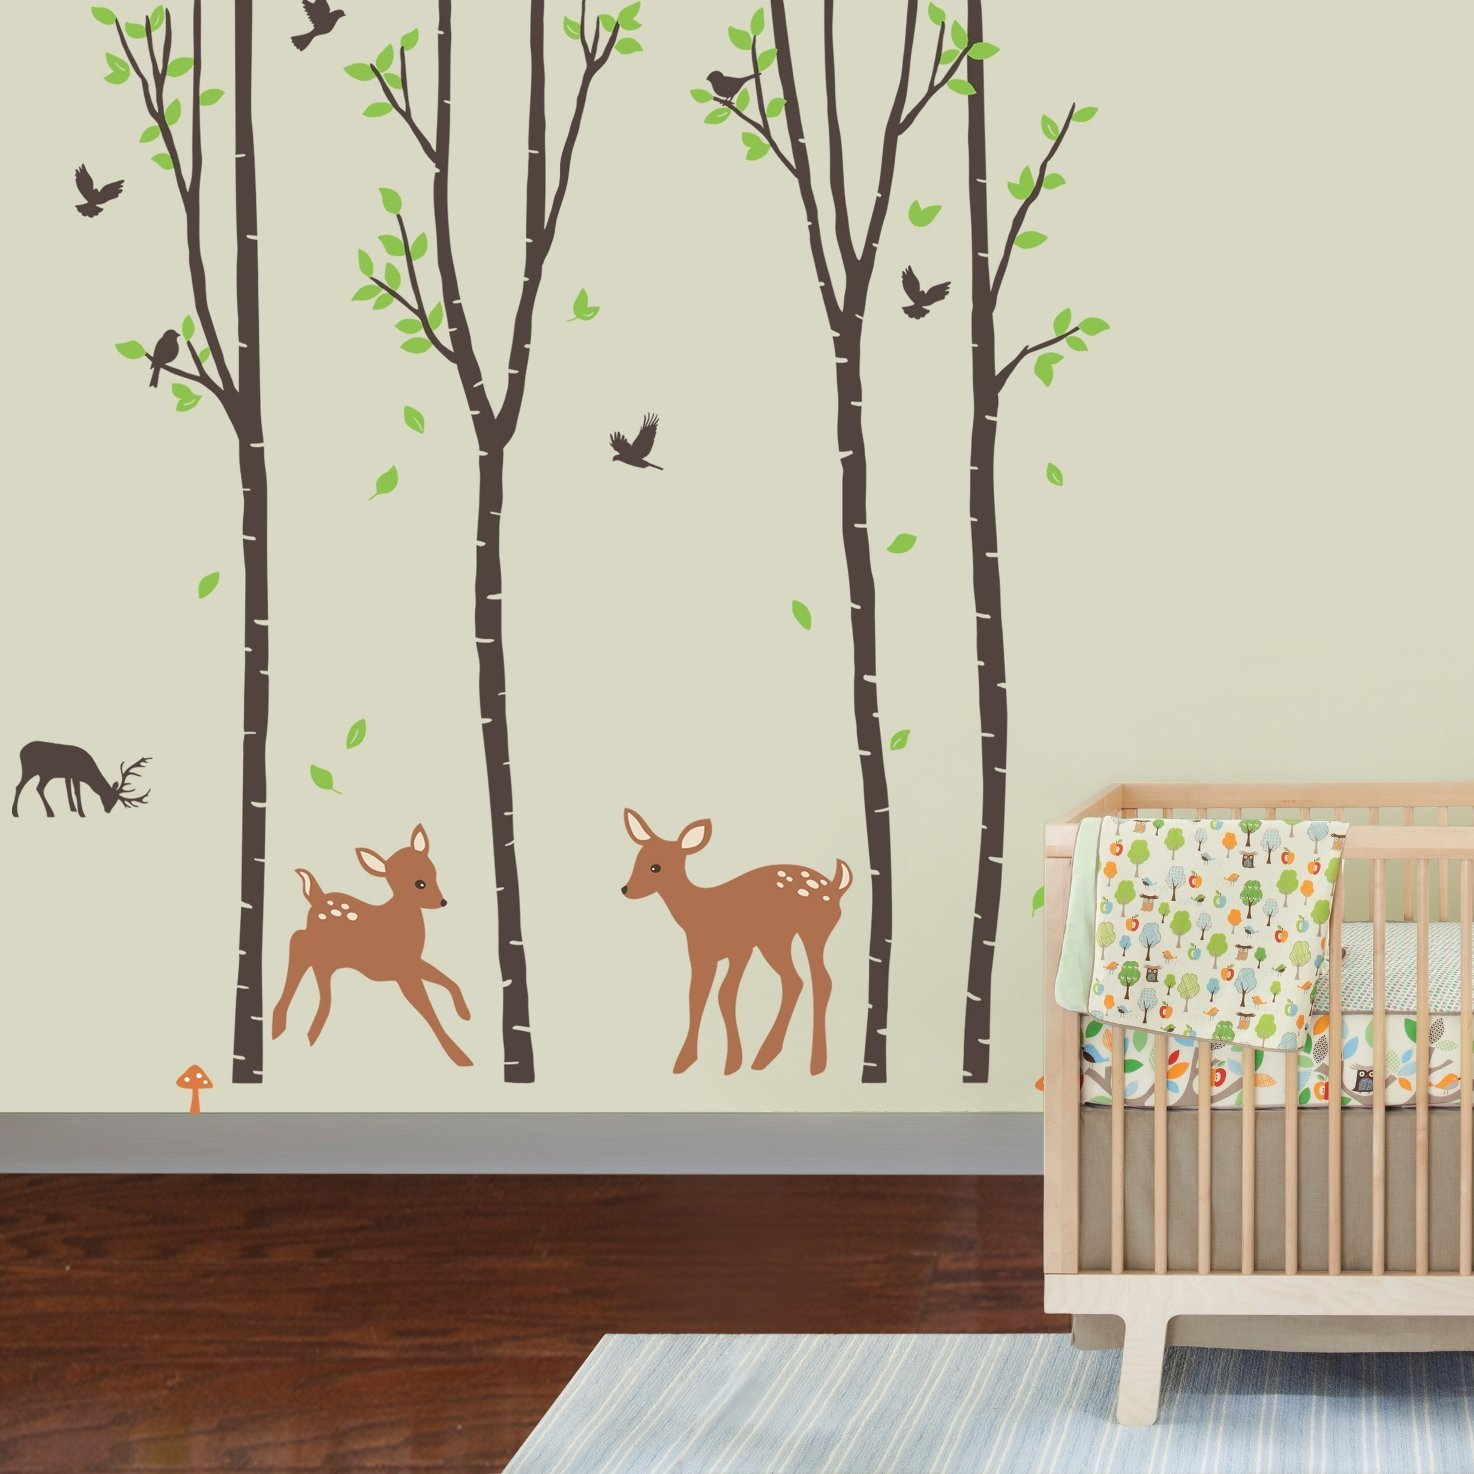 Attractive nursery wall decals amazon.com: giant wall sticker decals - birch tree forest with deers and ozbgvle